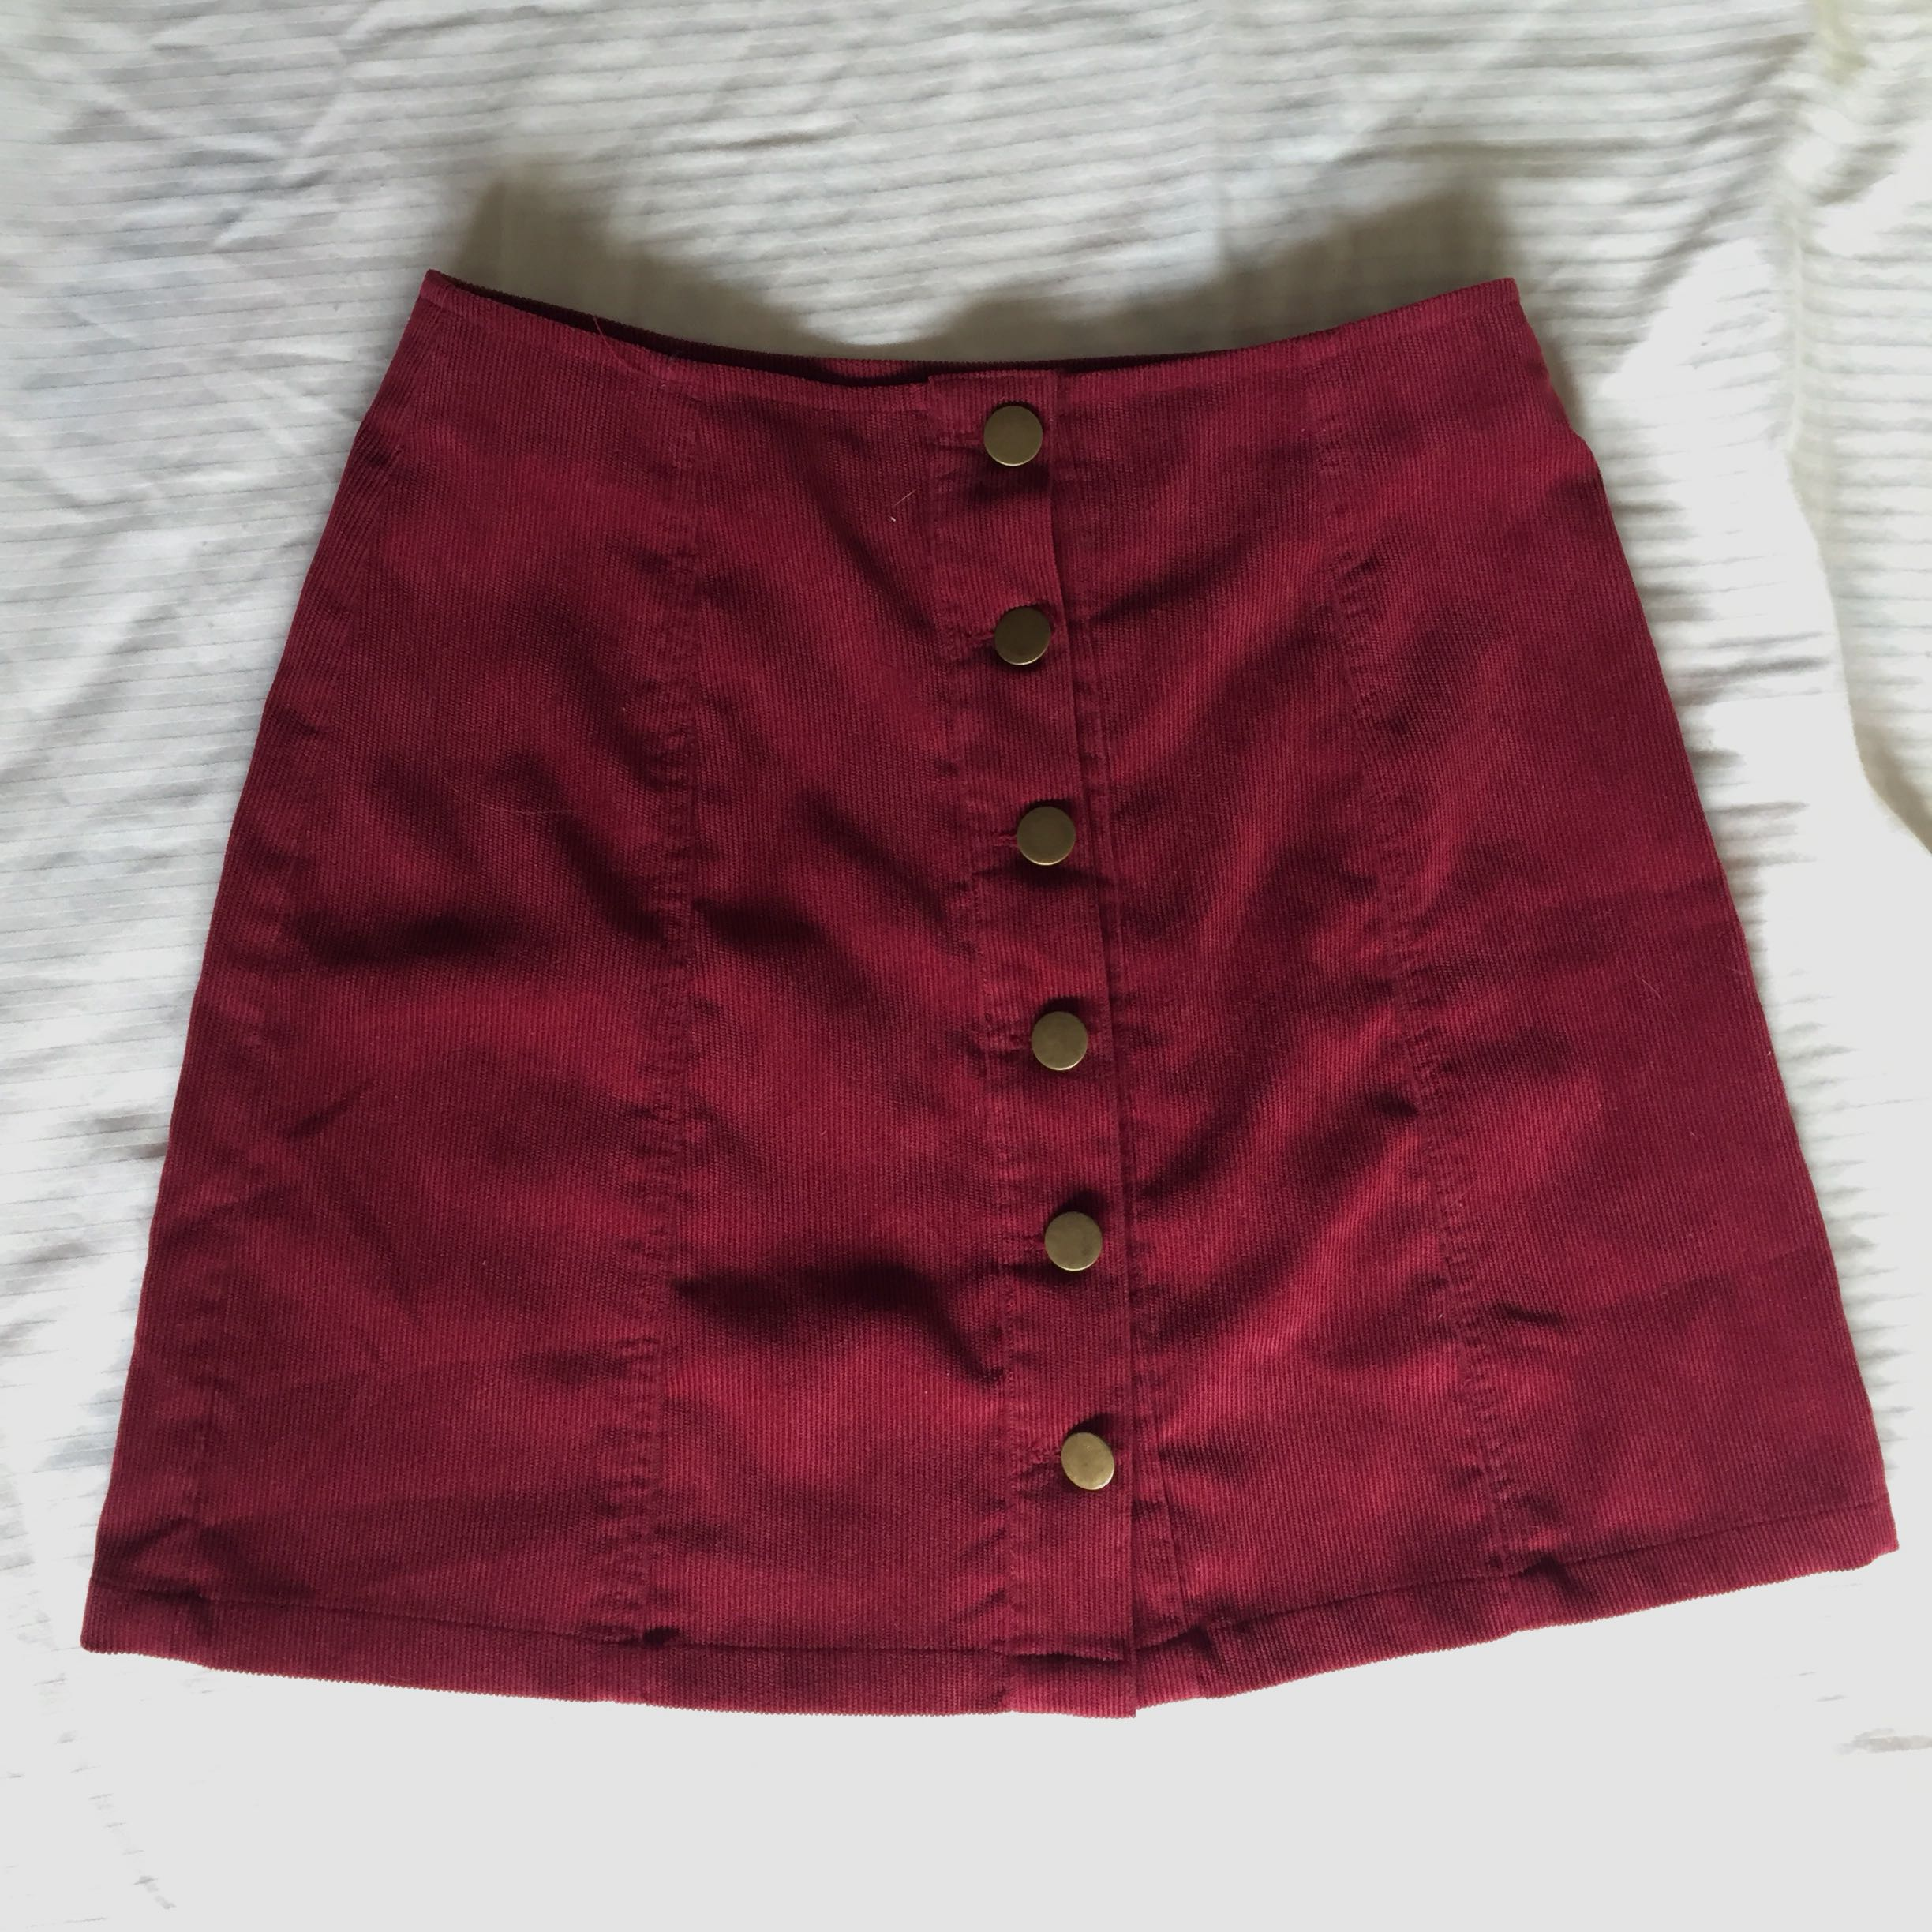 6ead6c874 Maroon denim skirt, Women's Fashion, Clothes on Carousell